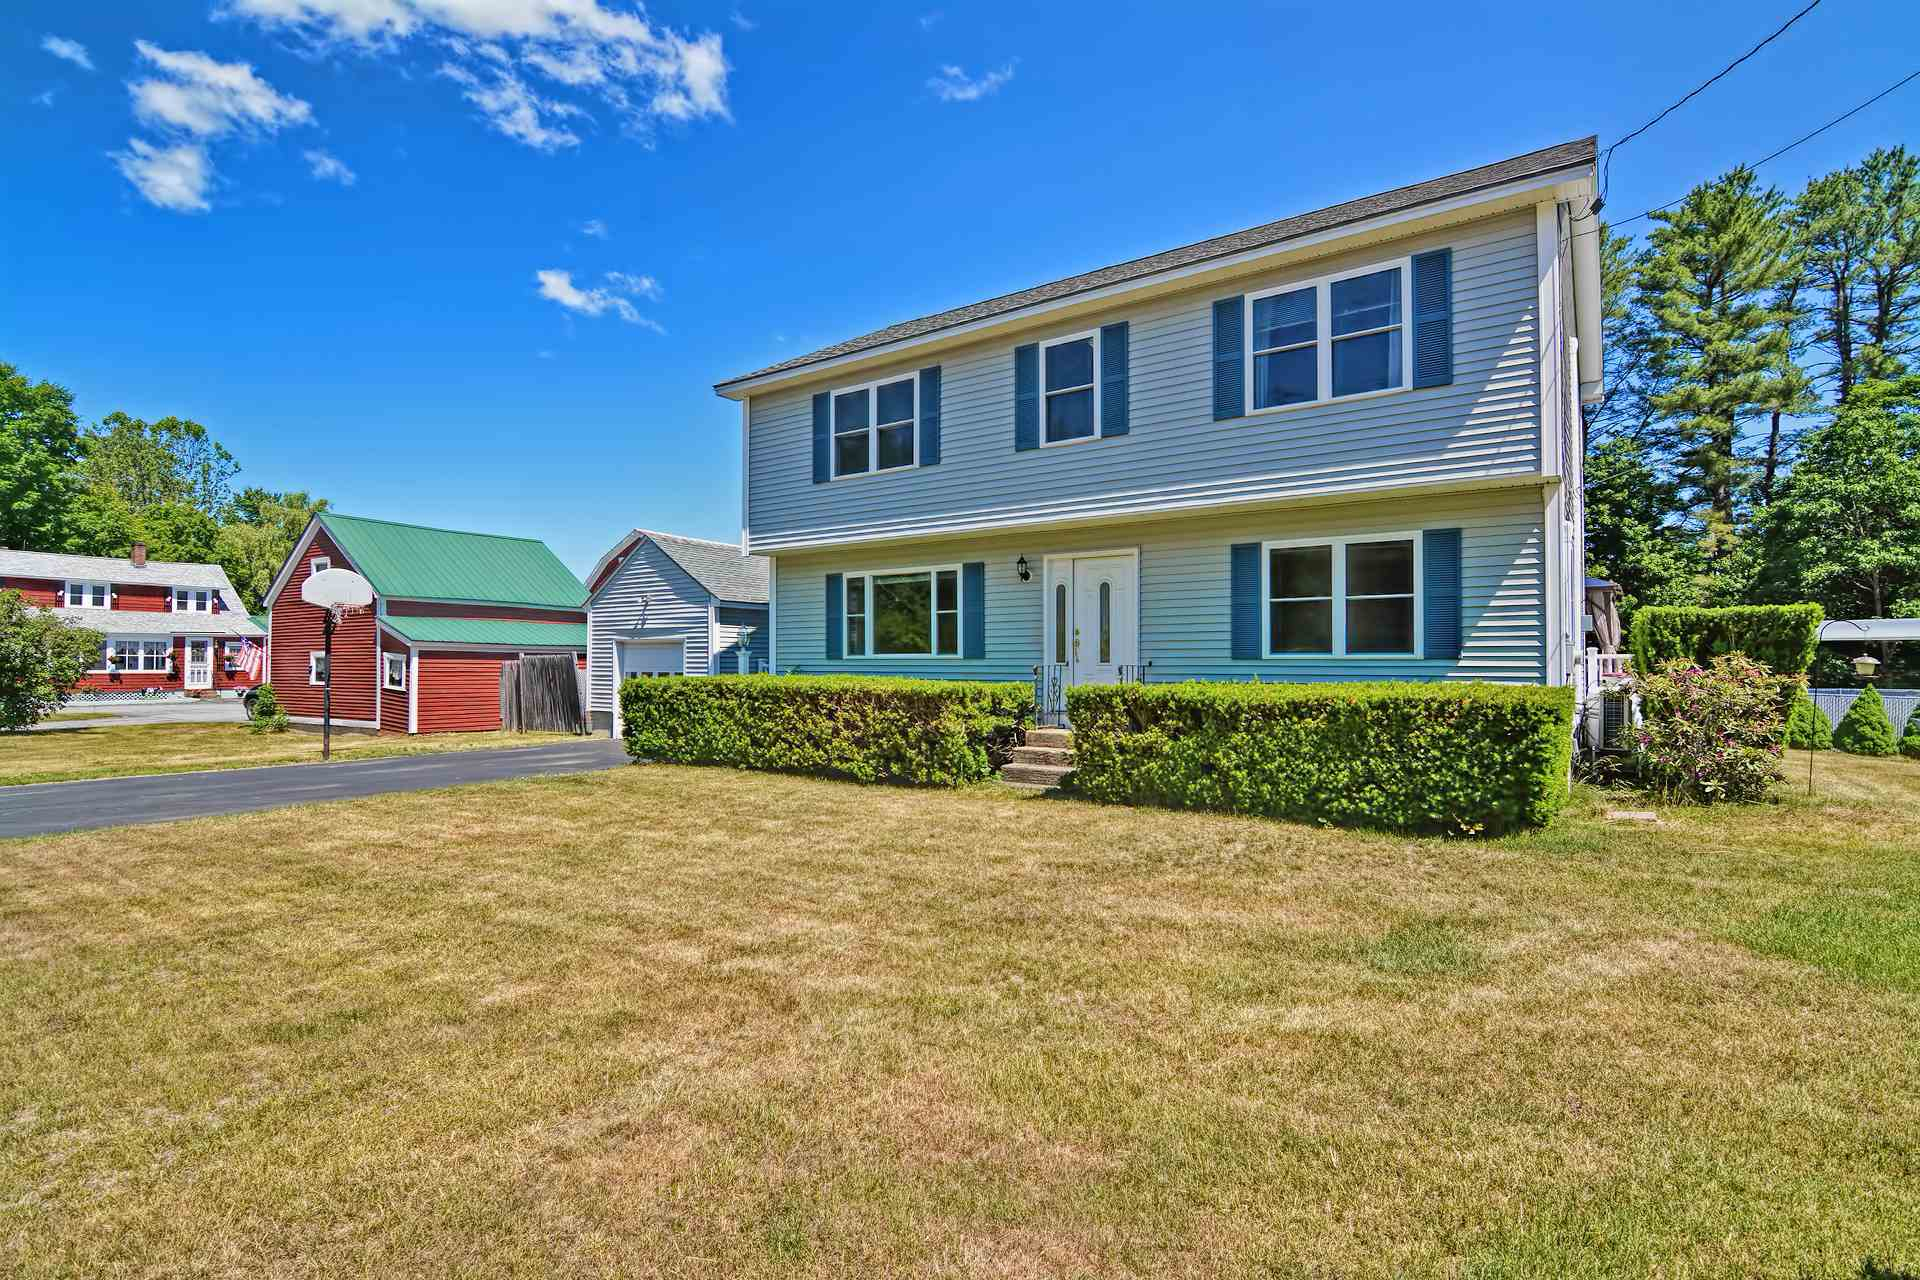 Photo of 160 New Boston Road Goffstown NH 03045